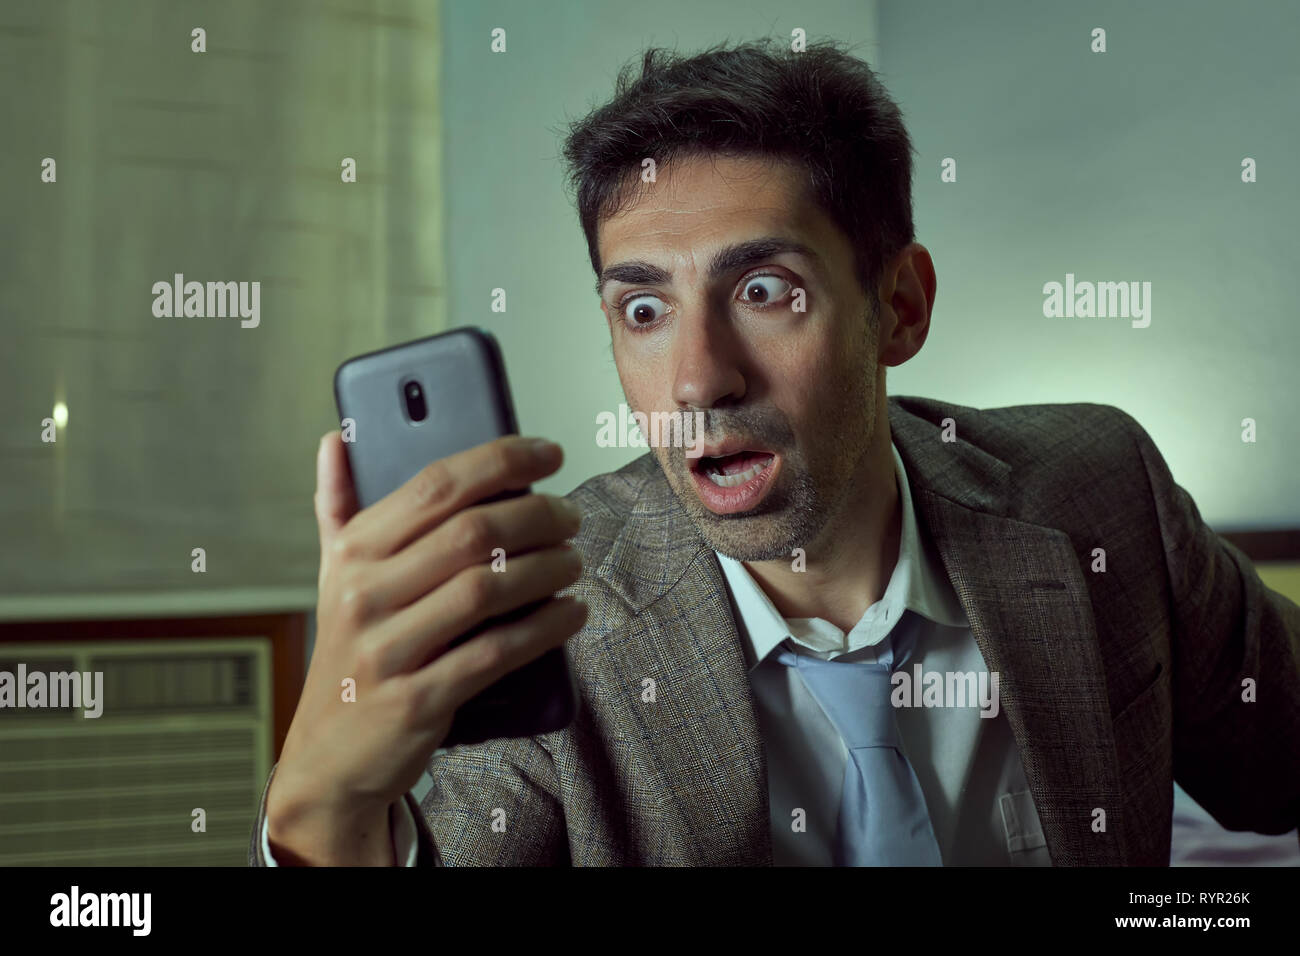 Very surprised man with tie and jacket looks at his cell. - Stock Image